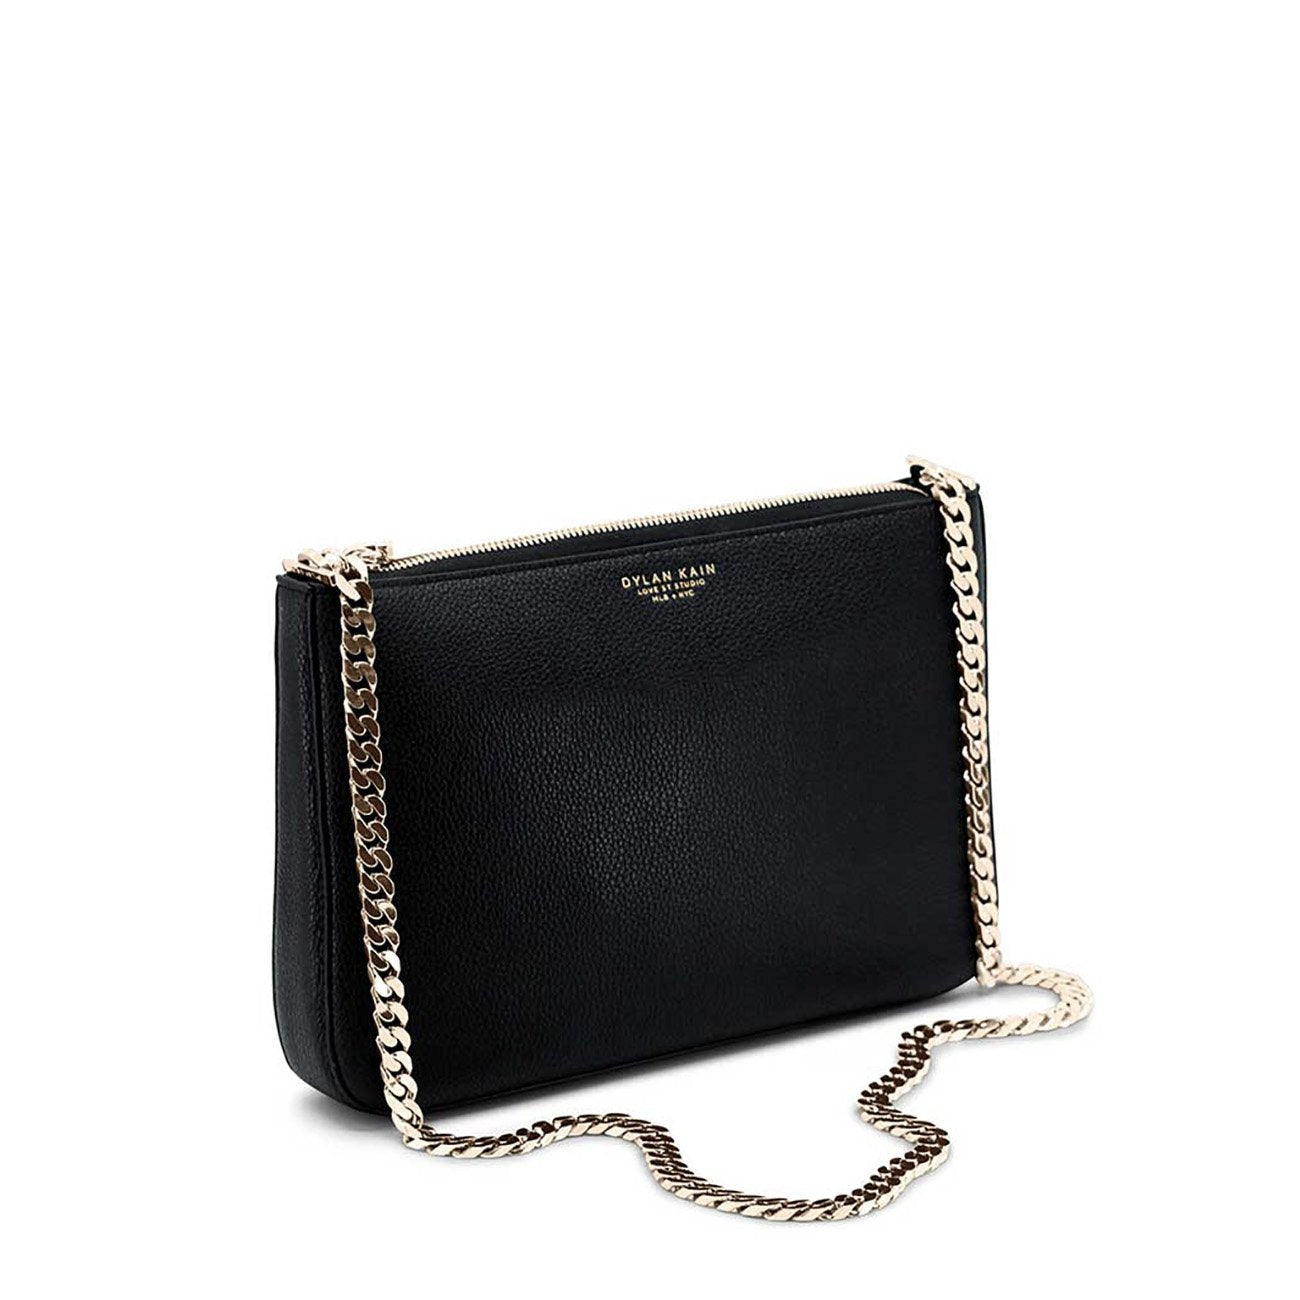 Dylan Kain Chloe Black Leather Bag with Light Gold Chain and Hardware